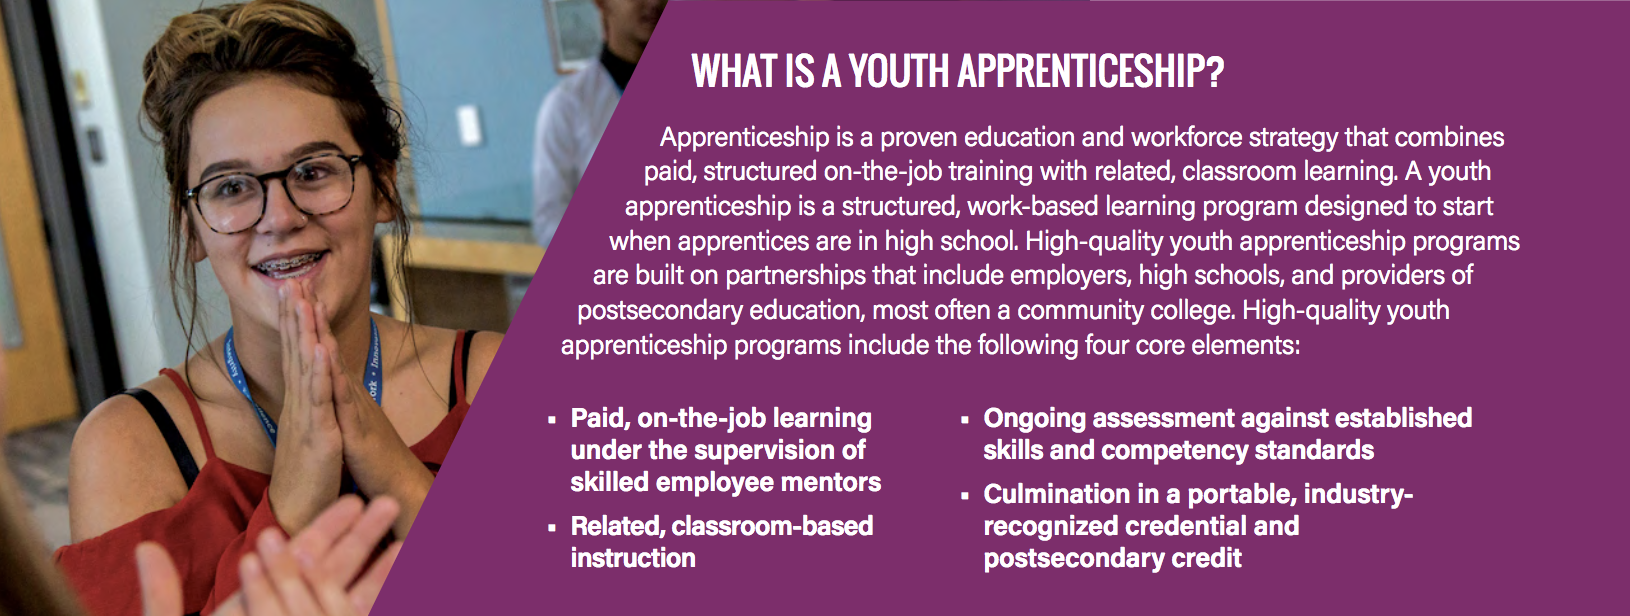 States' Role in Advancing High-Quality Youth Apprenticeship